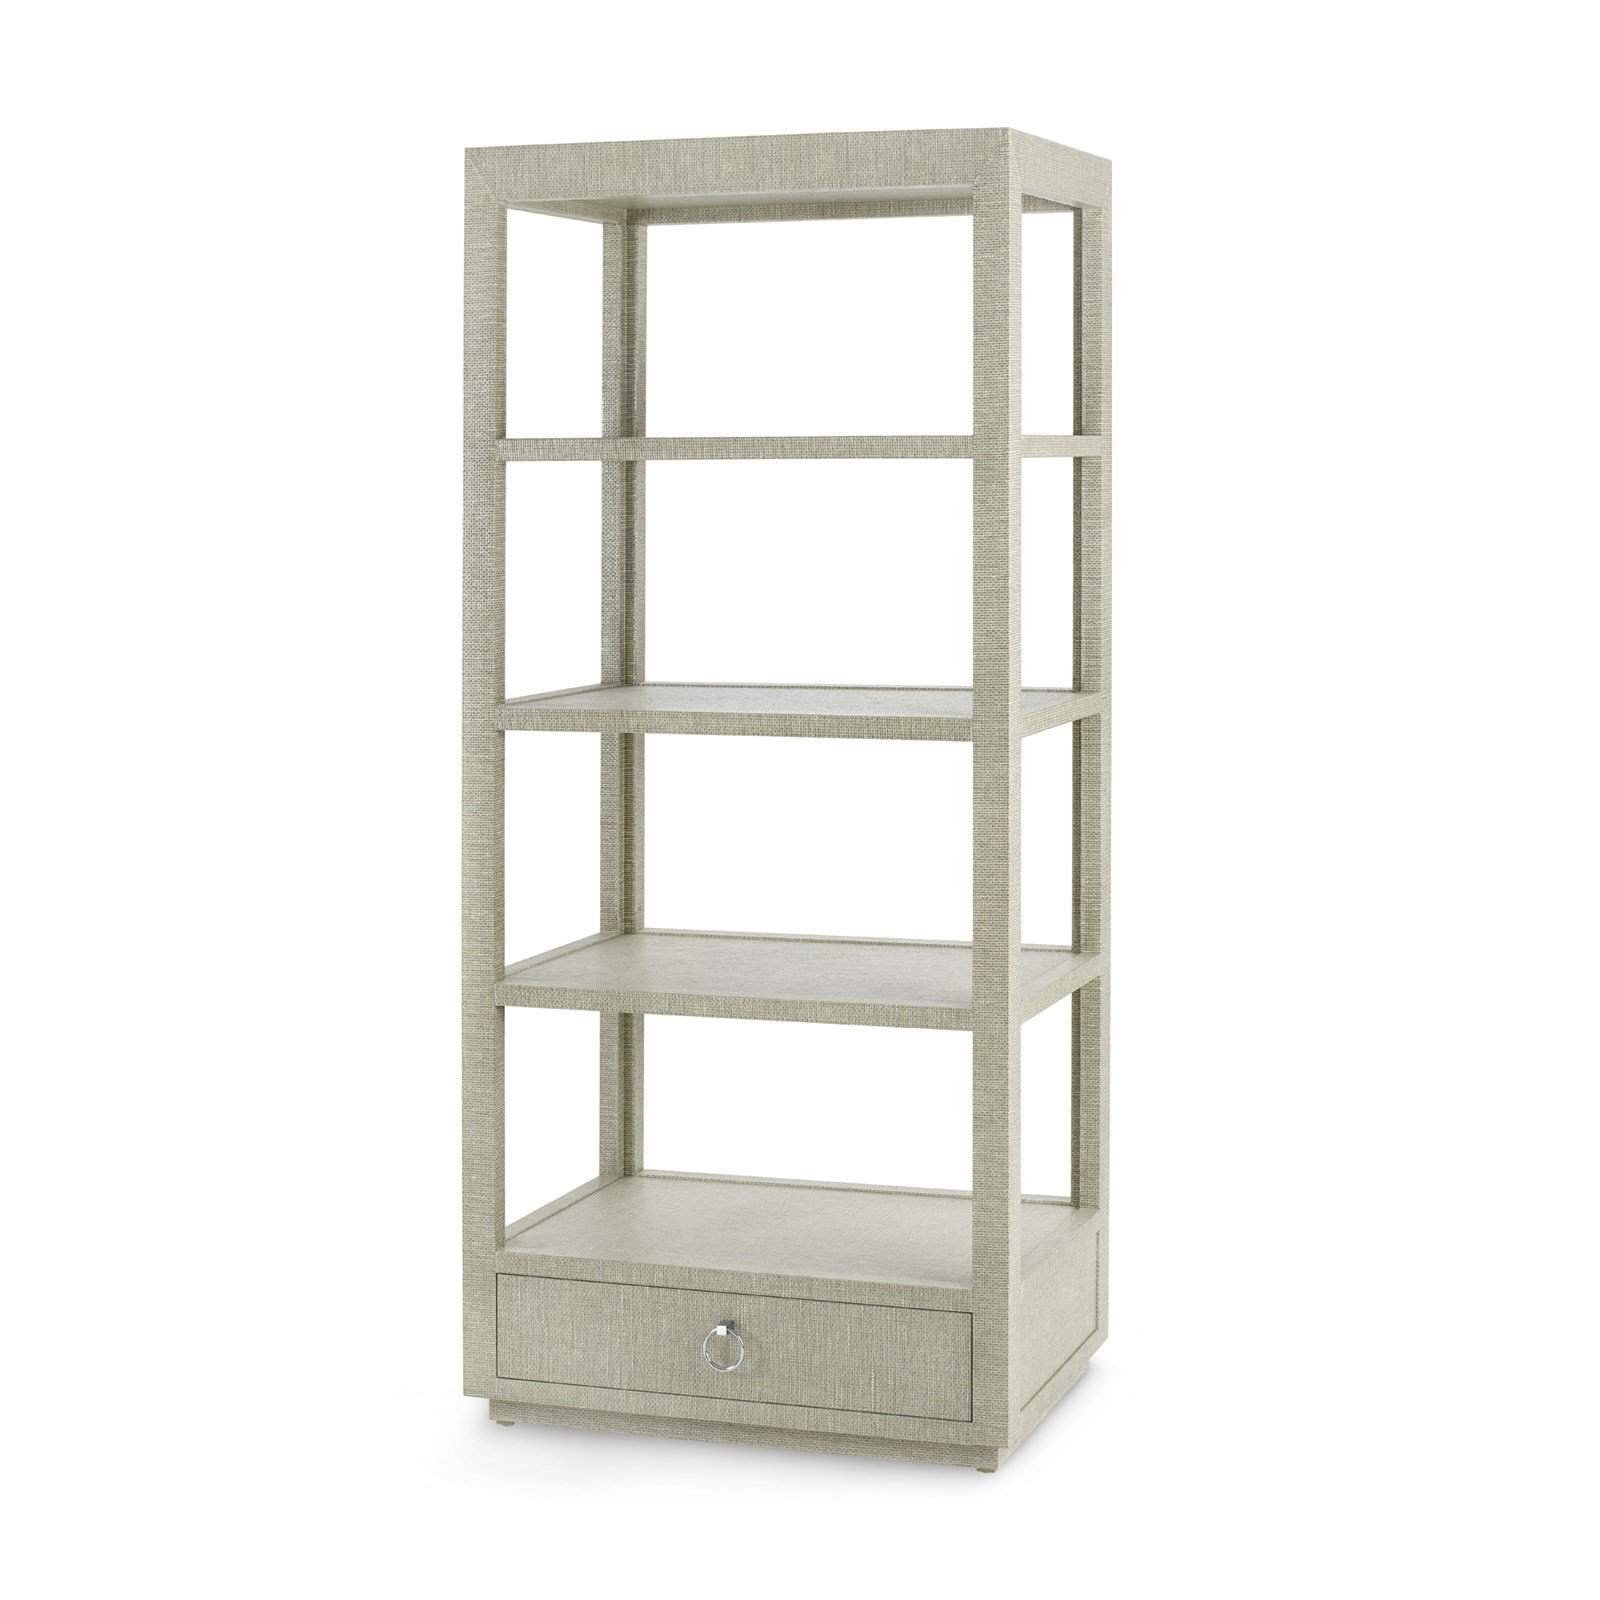 Bungalow 5 - Camilla Etagere, Moss Gray Tweed